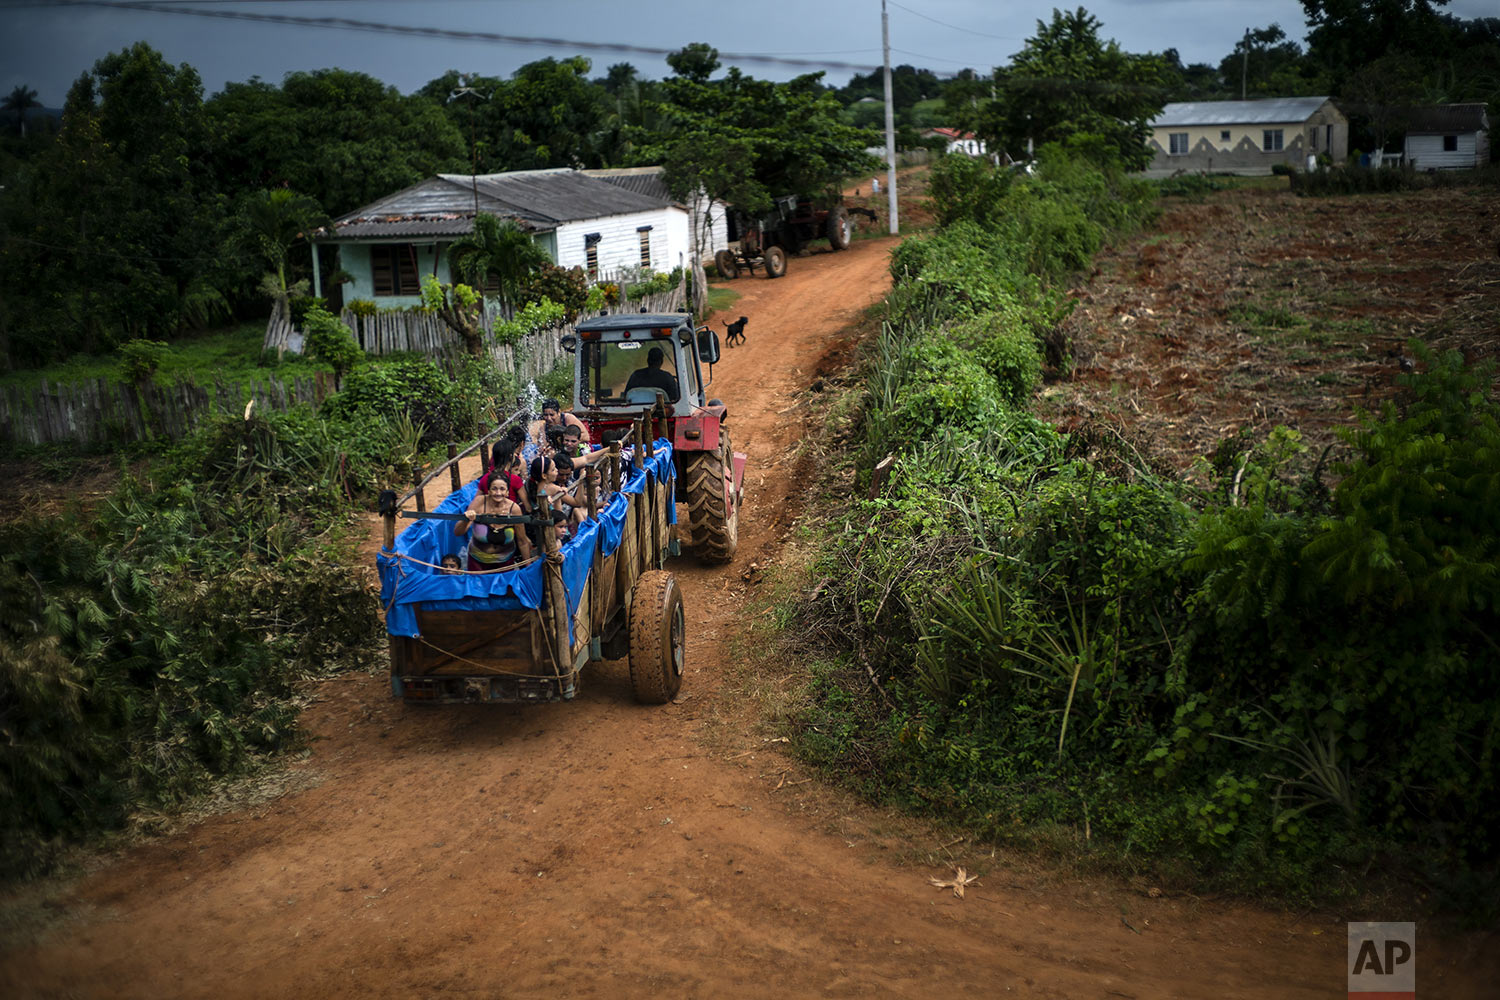 In this Aug. 24, 2019 photo, a tractor pulls a trailer converted into a swimming pool along the roads of El Infernal neighborhood in San Andres in the province of Pinar del Río, Cuba. (AP Photo/Ramon Espinosa)